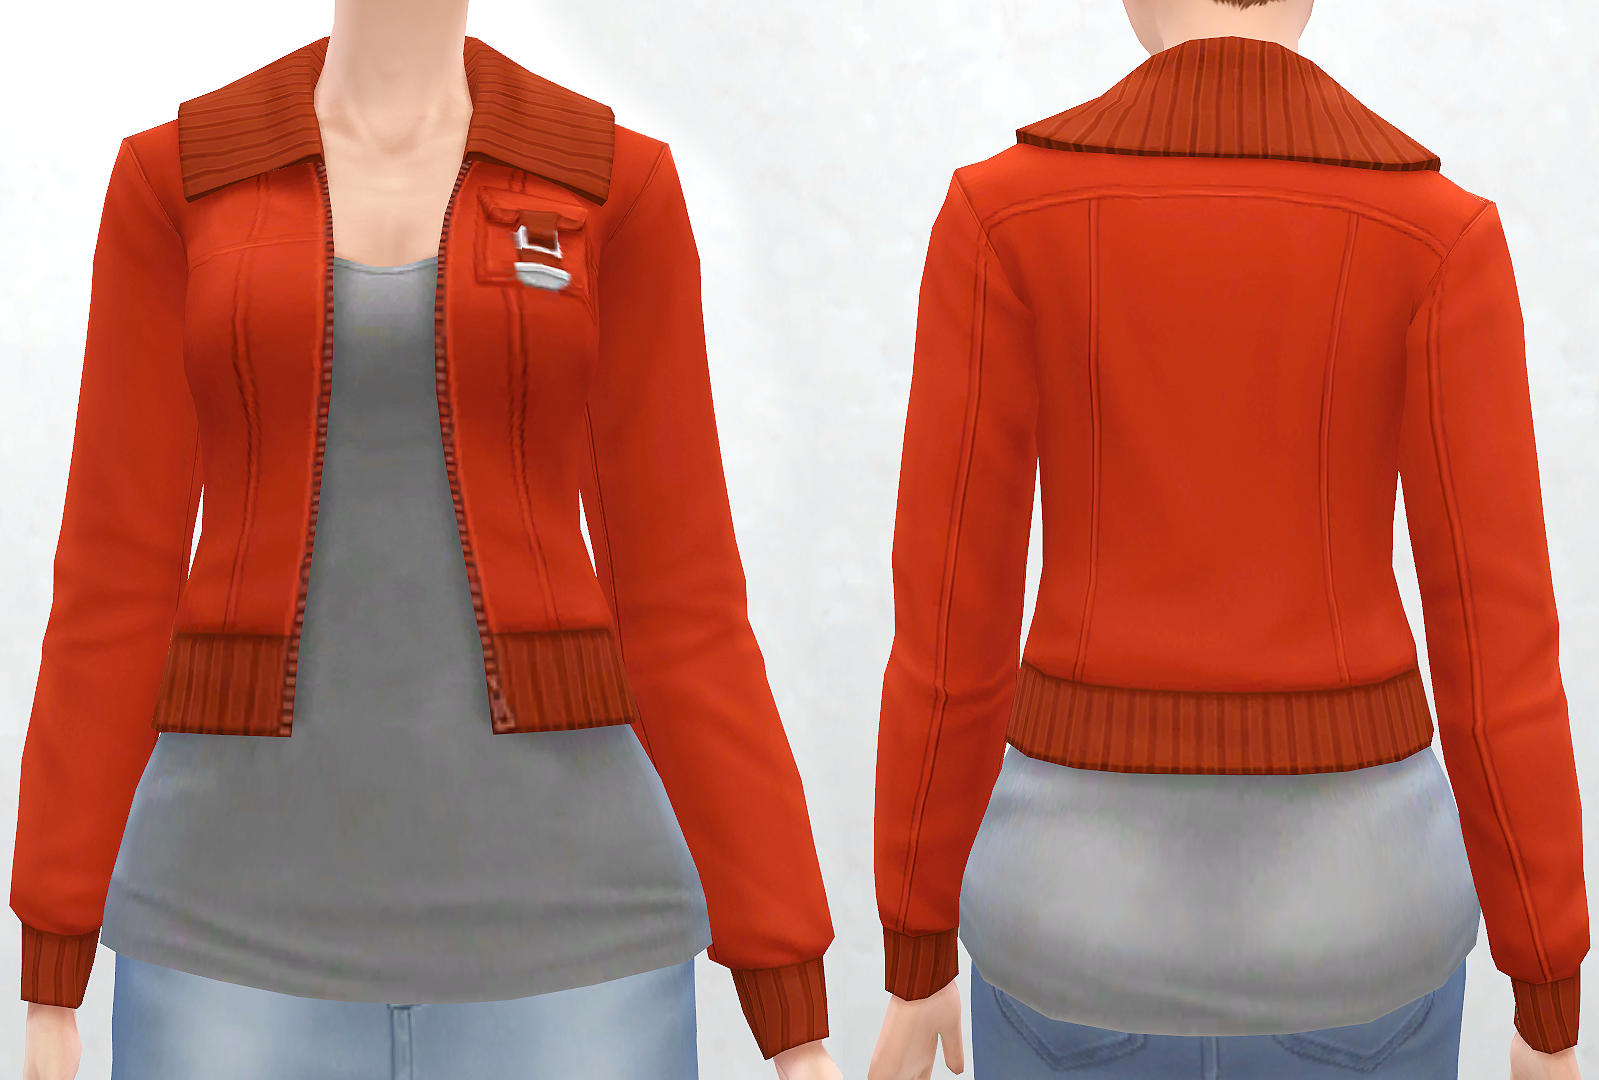 Military Jacket with Simple Tee for Teen - Elder Females by Pickypikachu